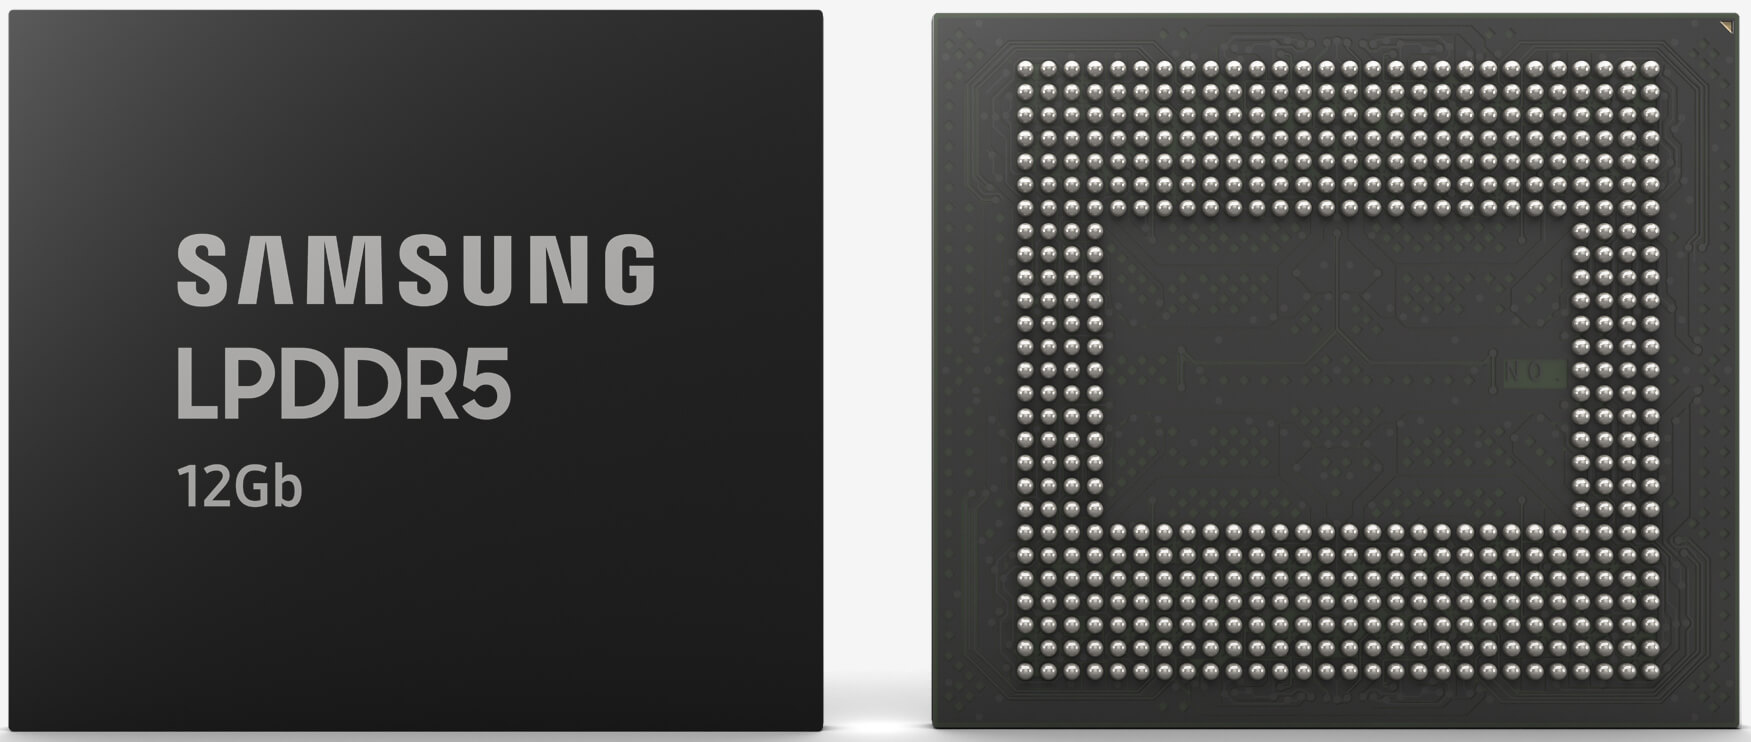 Samsung is now mass producing 12Gb LPDDR5 mobile DRAM optimized for 5G and AI